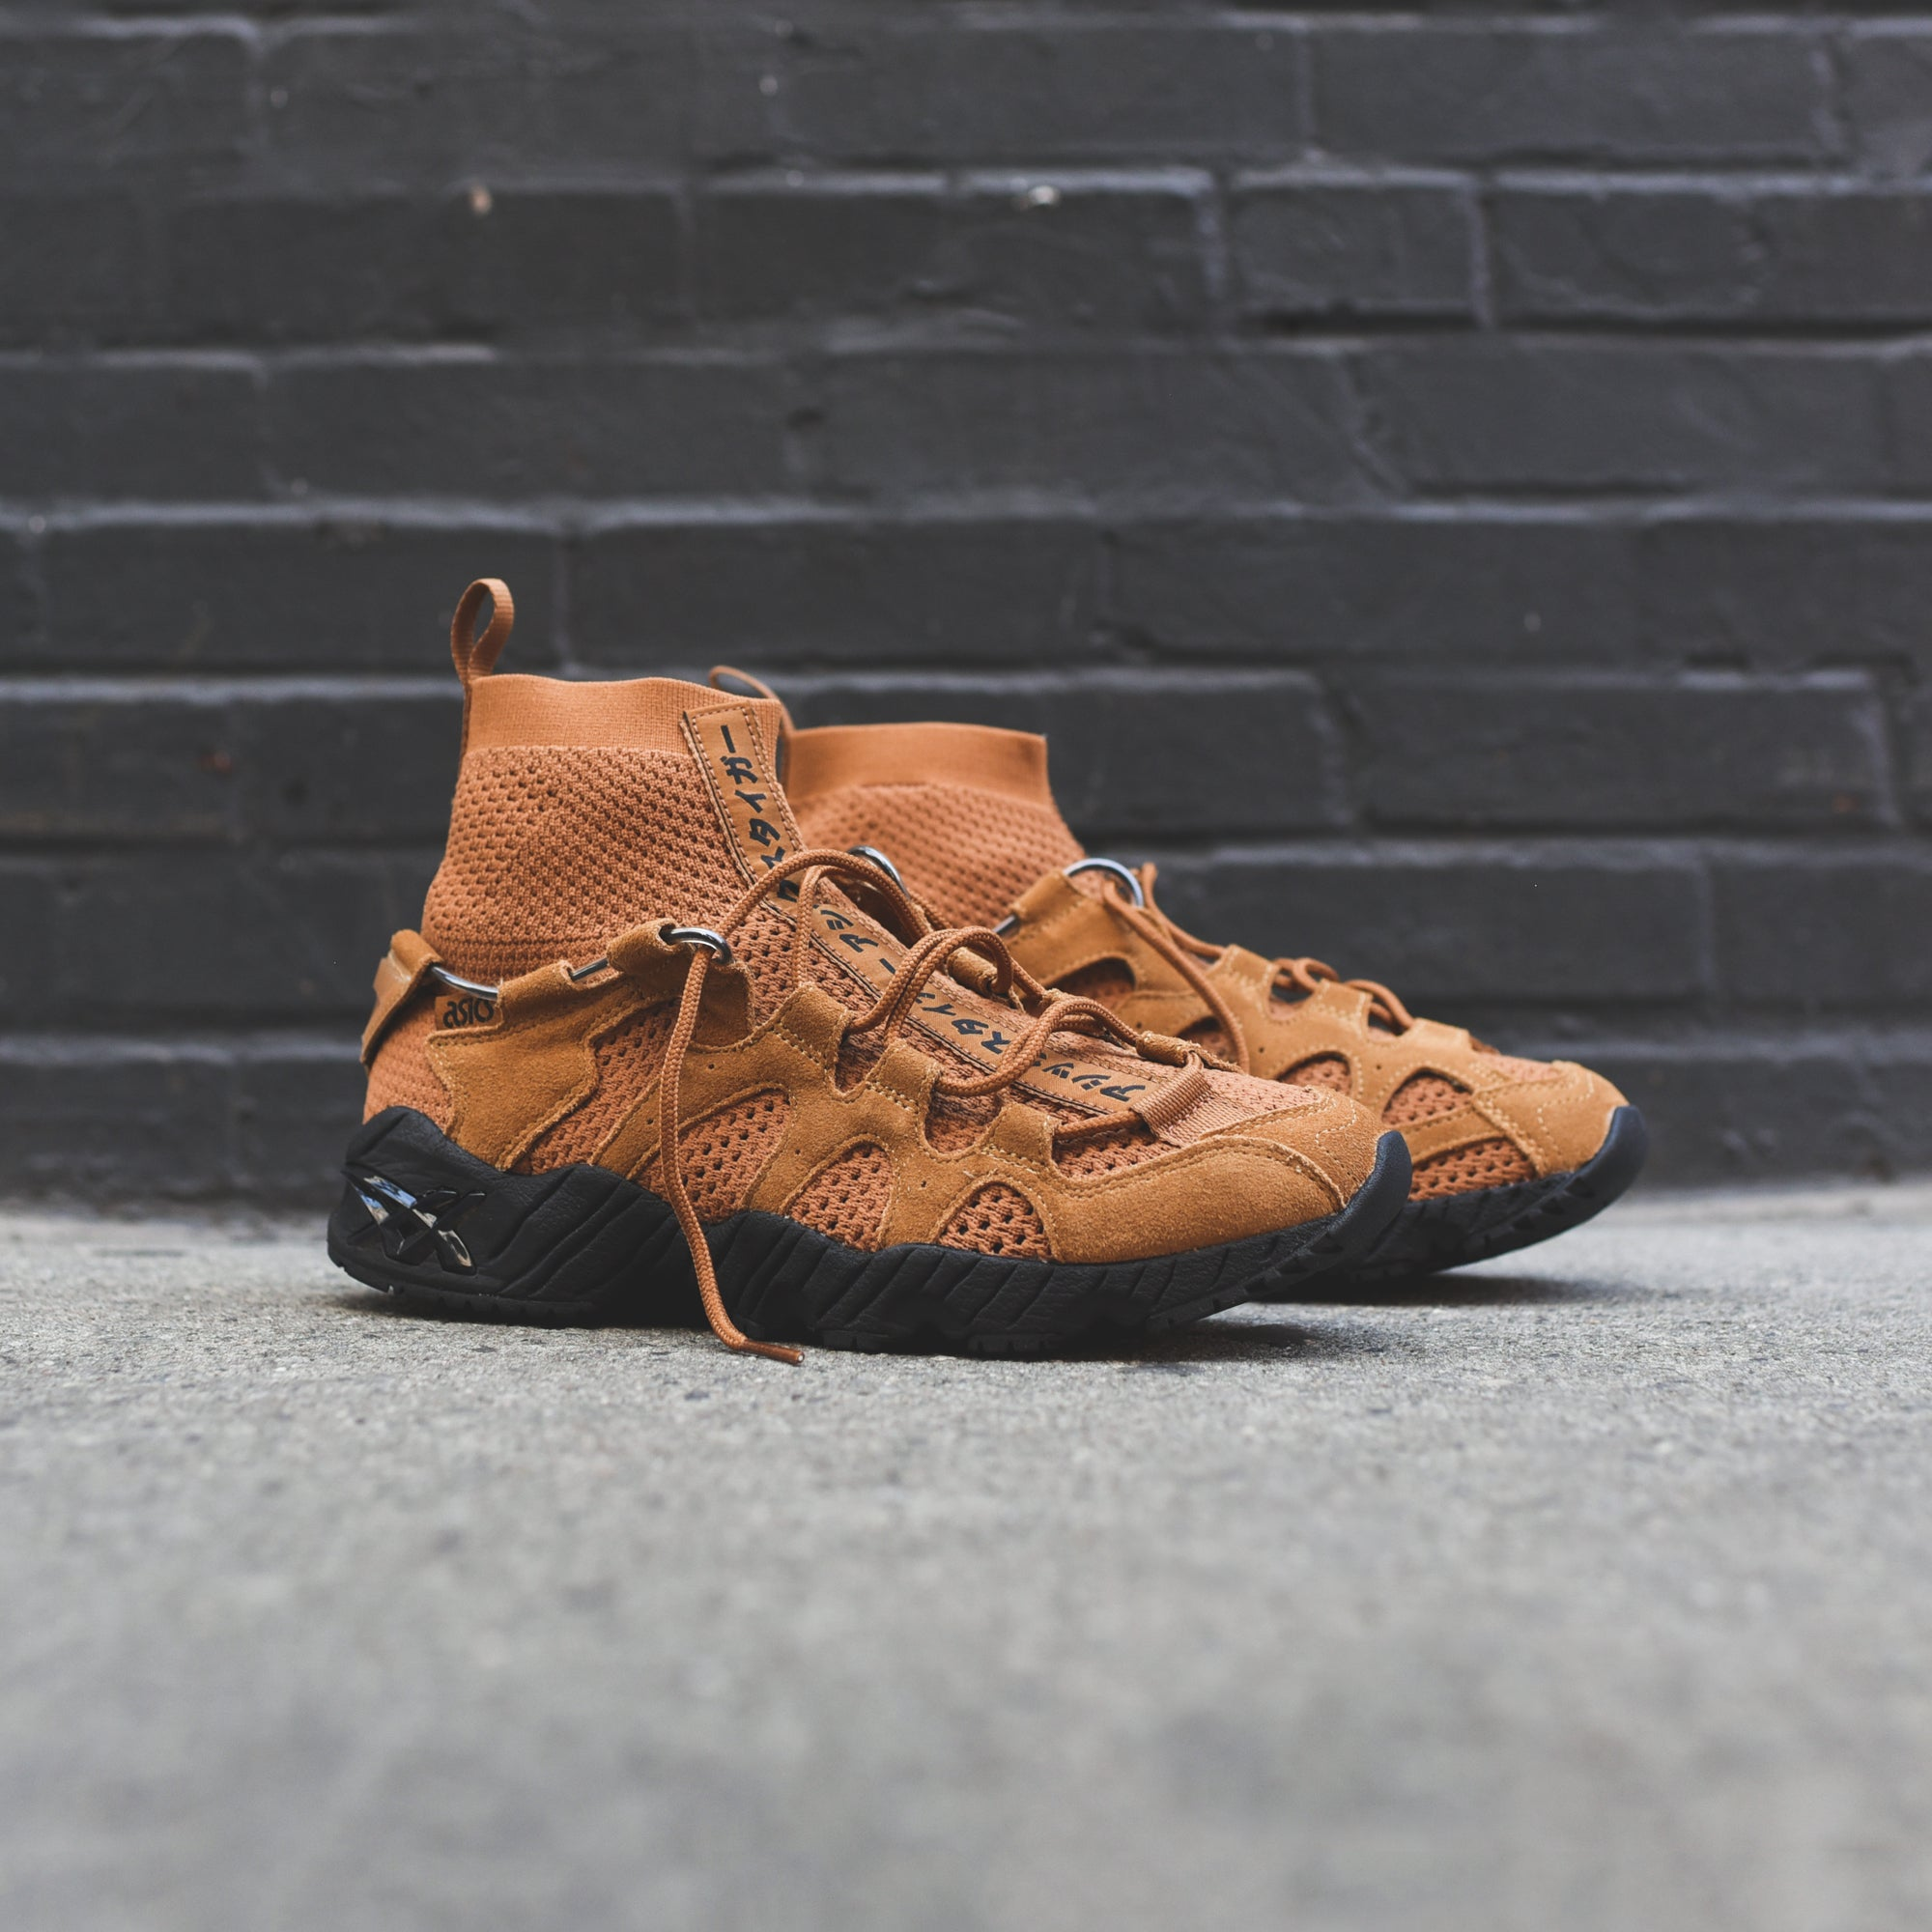 Asics Gel-Mai Knit MT - Wheat / Black